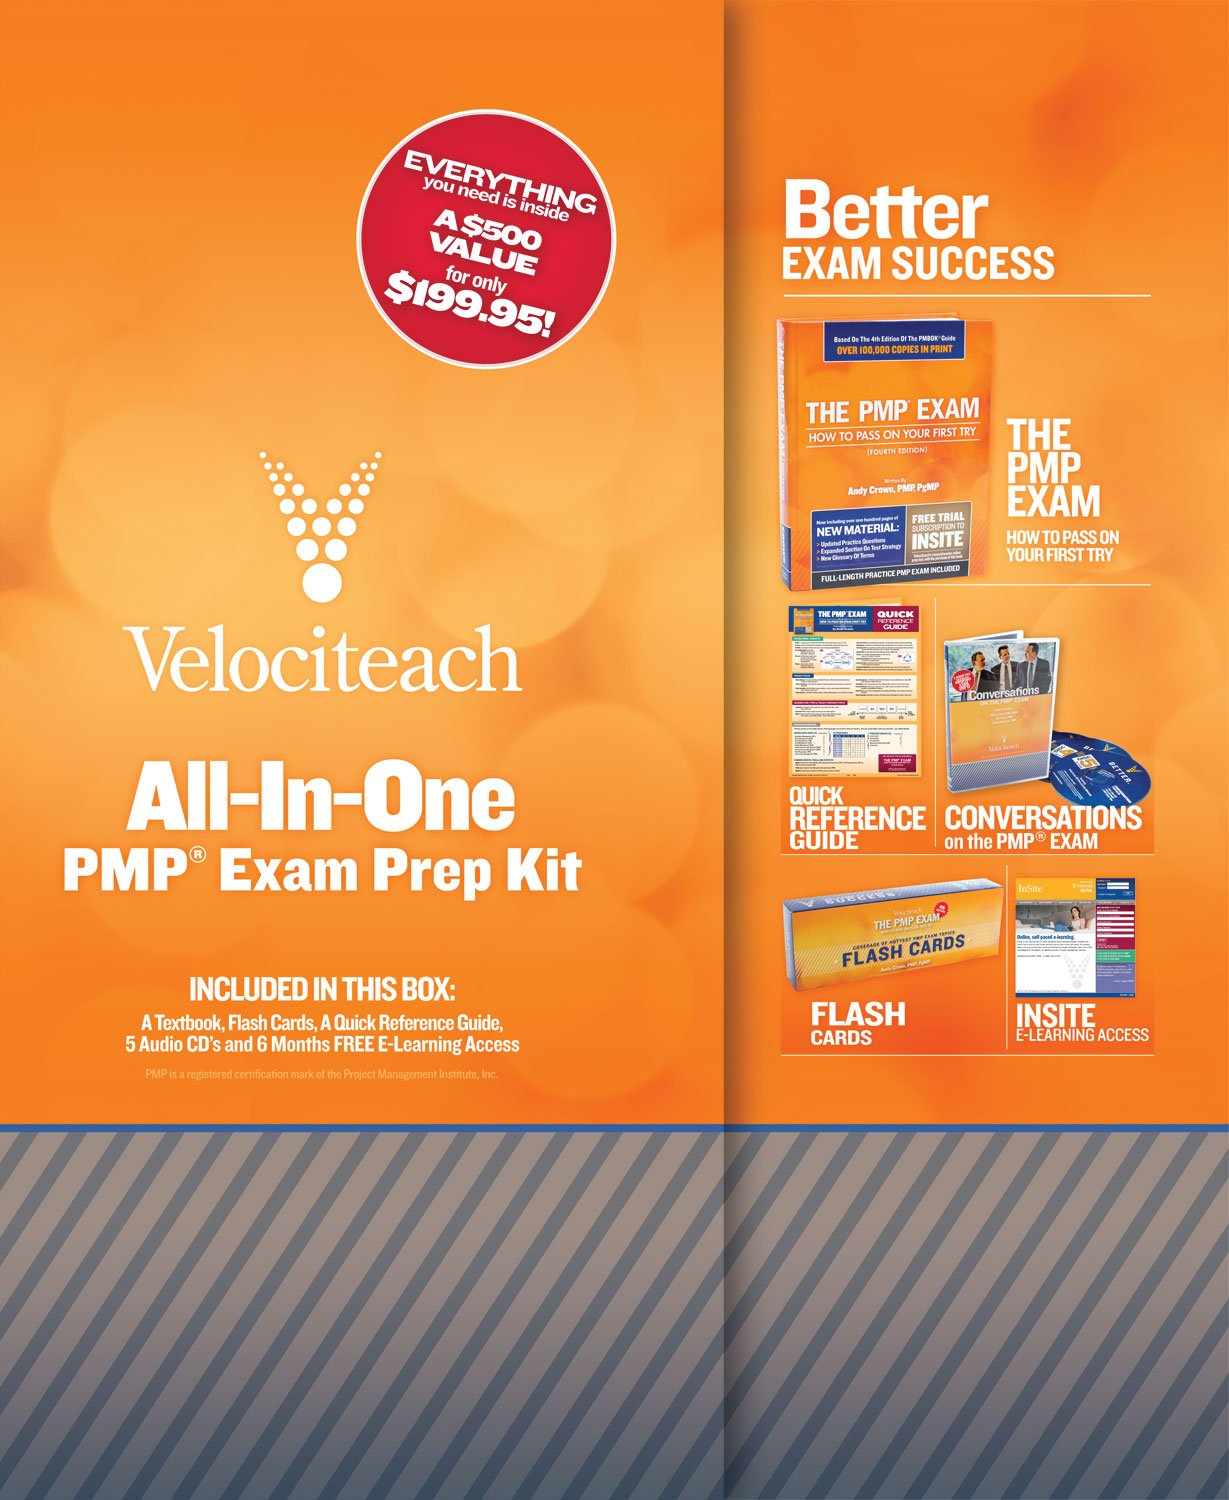 Buy All-in-one PMP Exam Prep Kit (Test Prep Series) Book Online at Low  Prices in India | All-in-one PMP Exam Prep Kit (Test Prep Series) Reviews &  Ratings ...